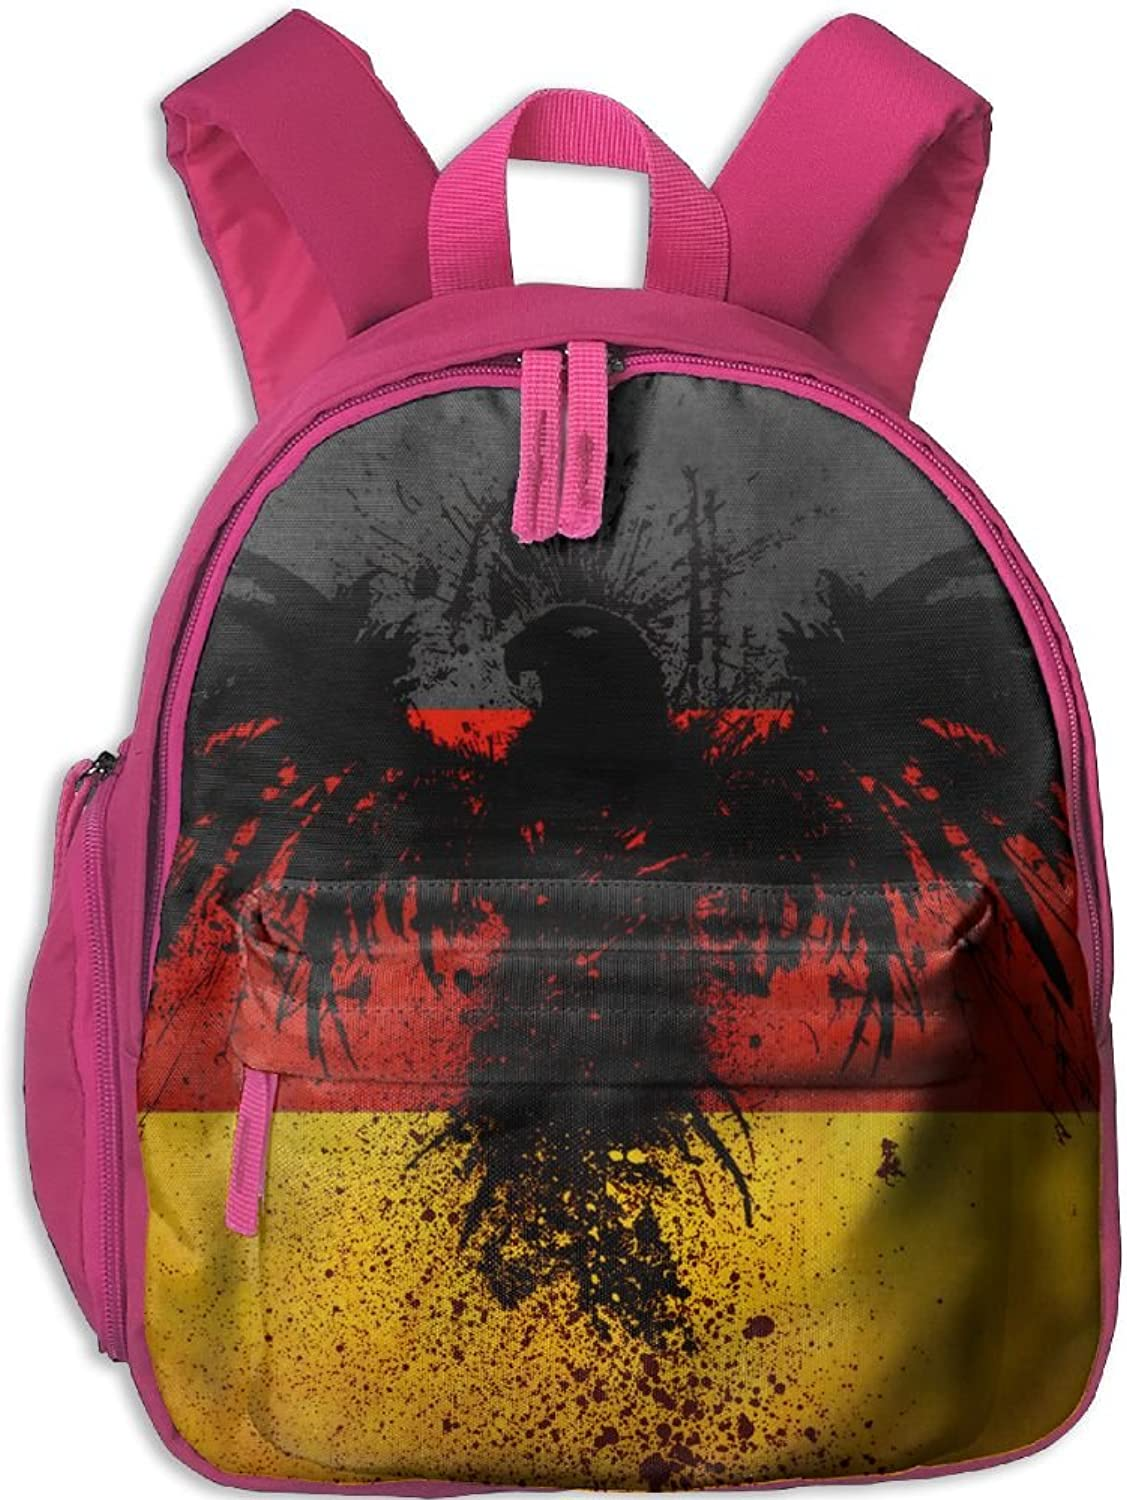 Pinta German Flag Eagle Cub Cool School Book Bag Backpacks for Girl's Boy's